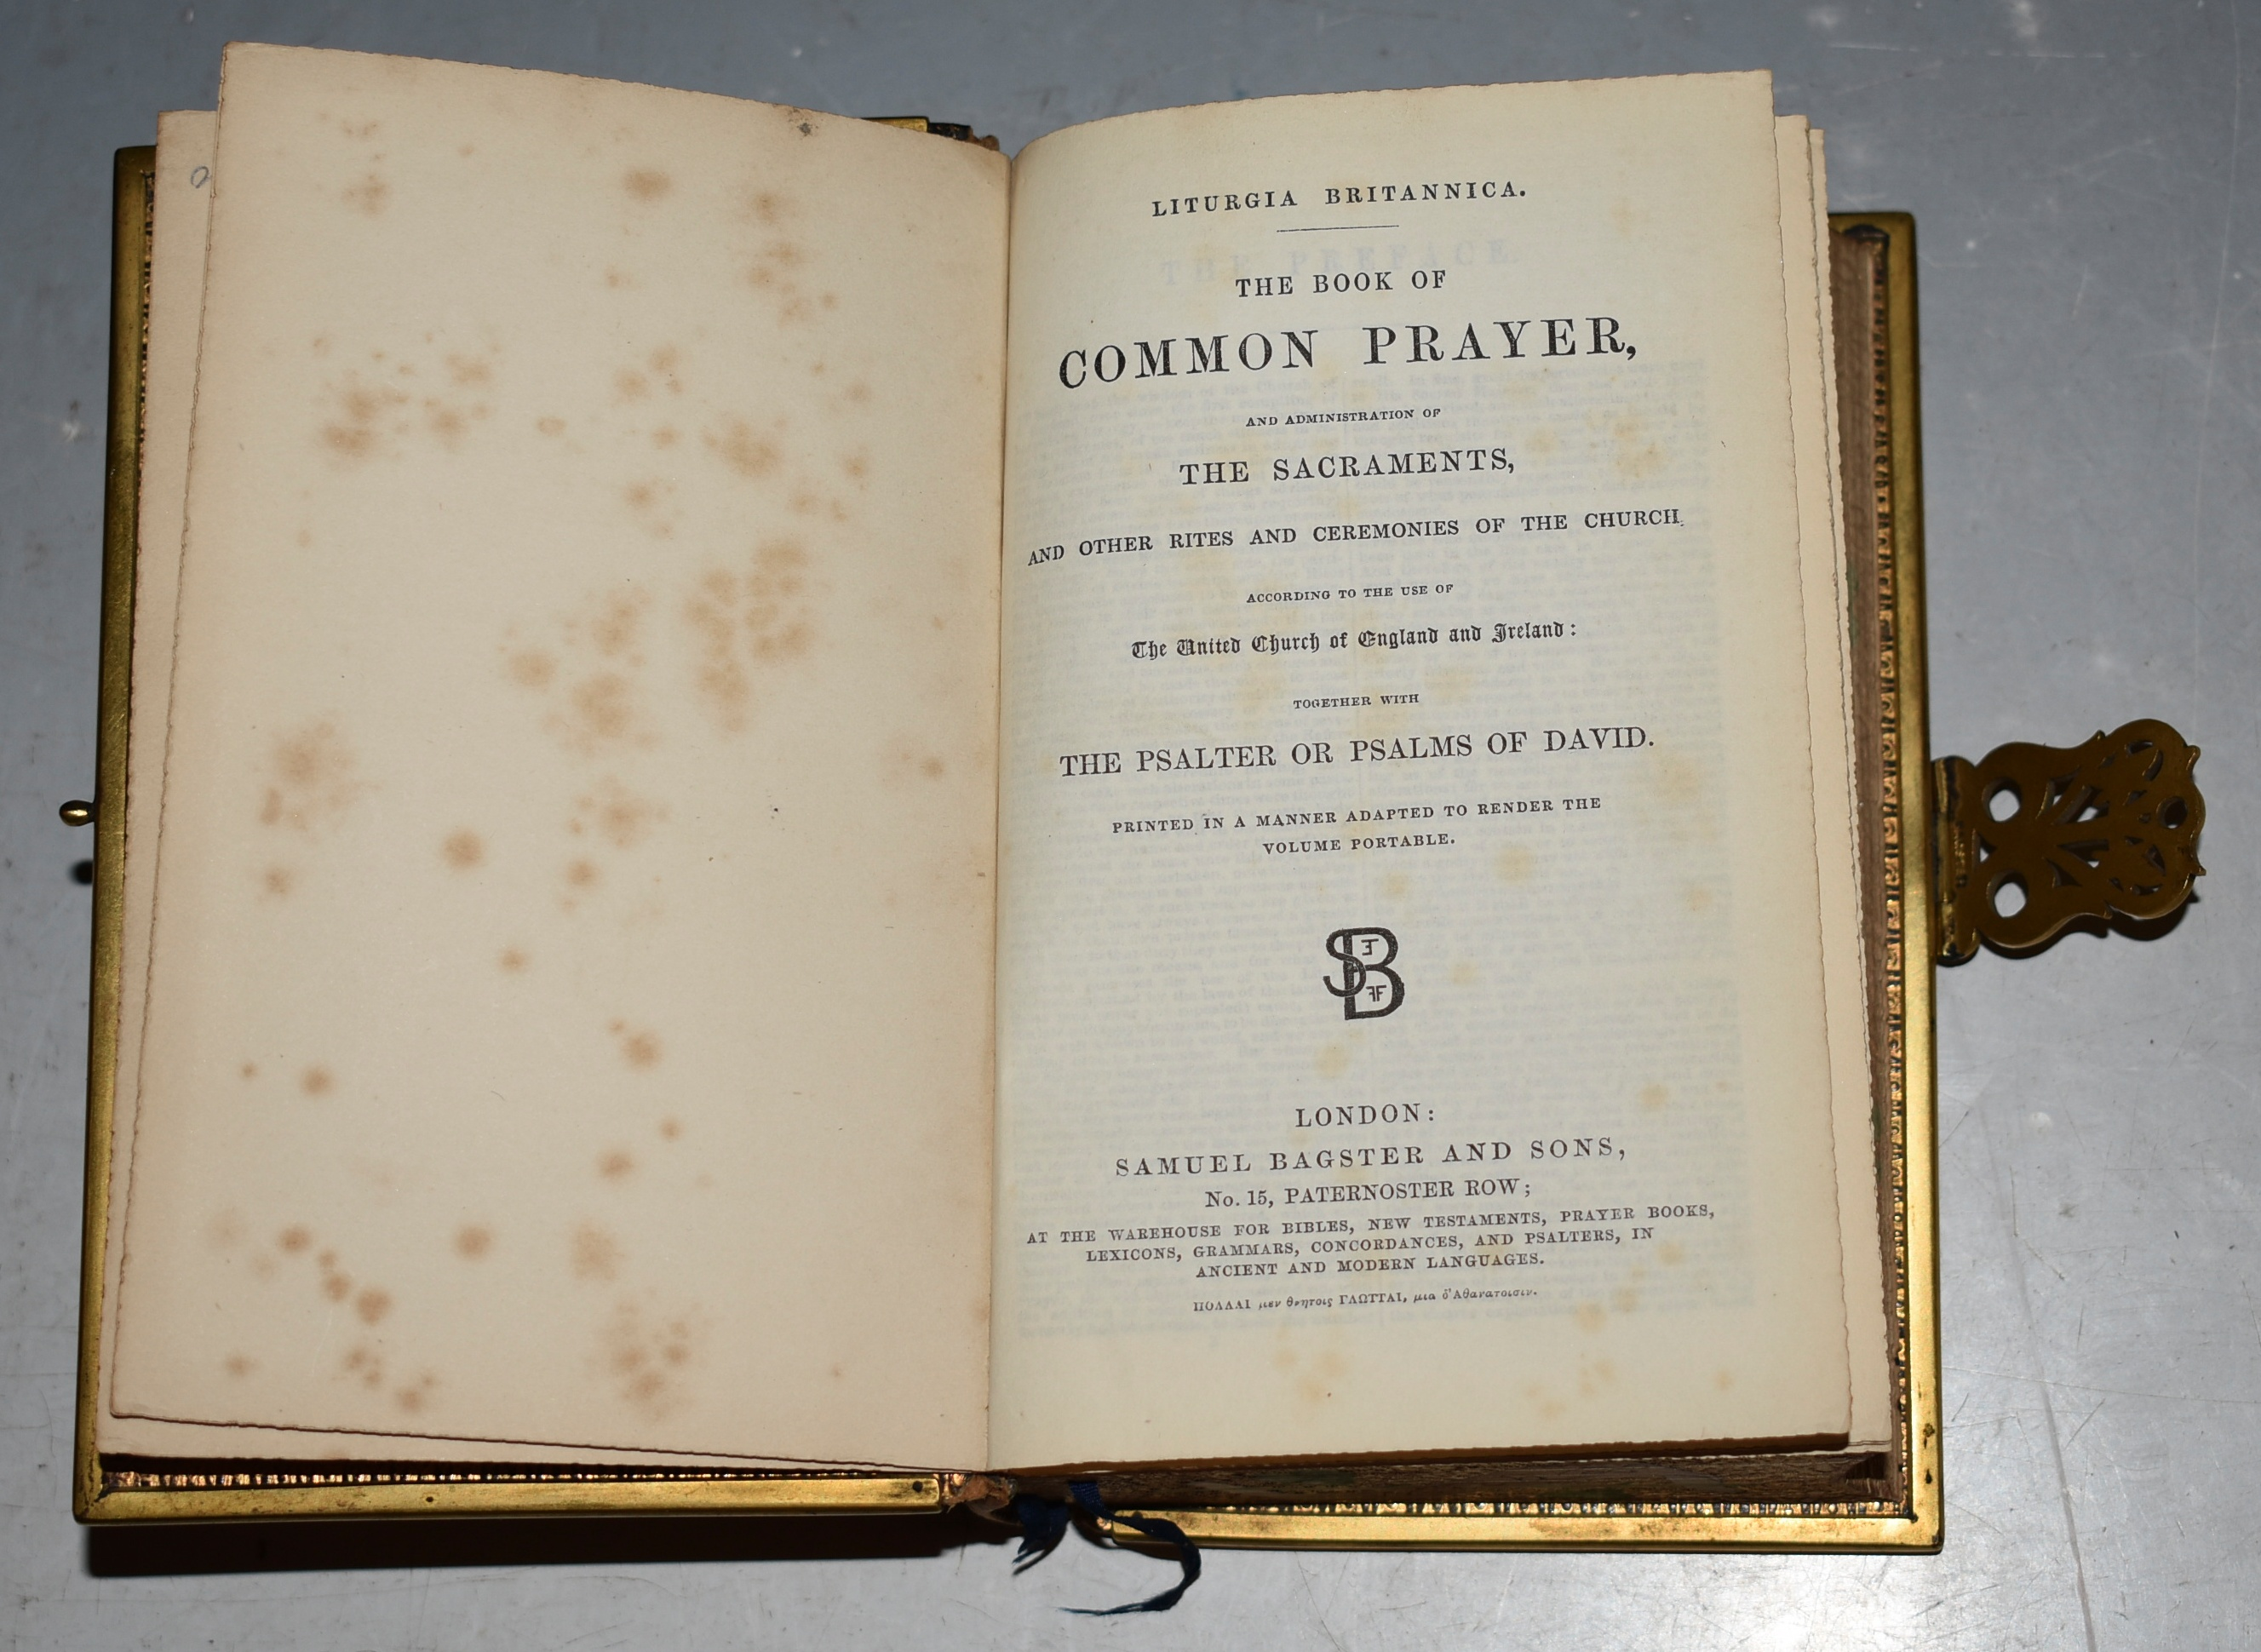 Image for The Book of Common Prayer, with Gauffered Fore-Edge Painting. Together with The Psalter or Psalms of David. The English Version of The Polyglott Bible, Old and New Testaments.